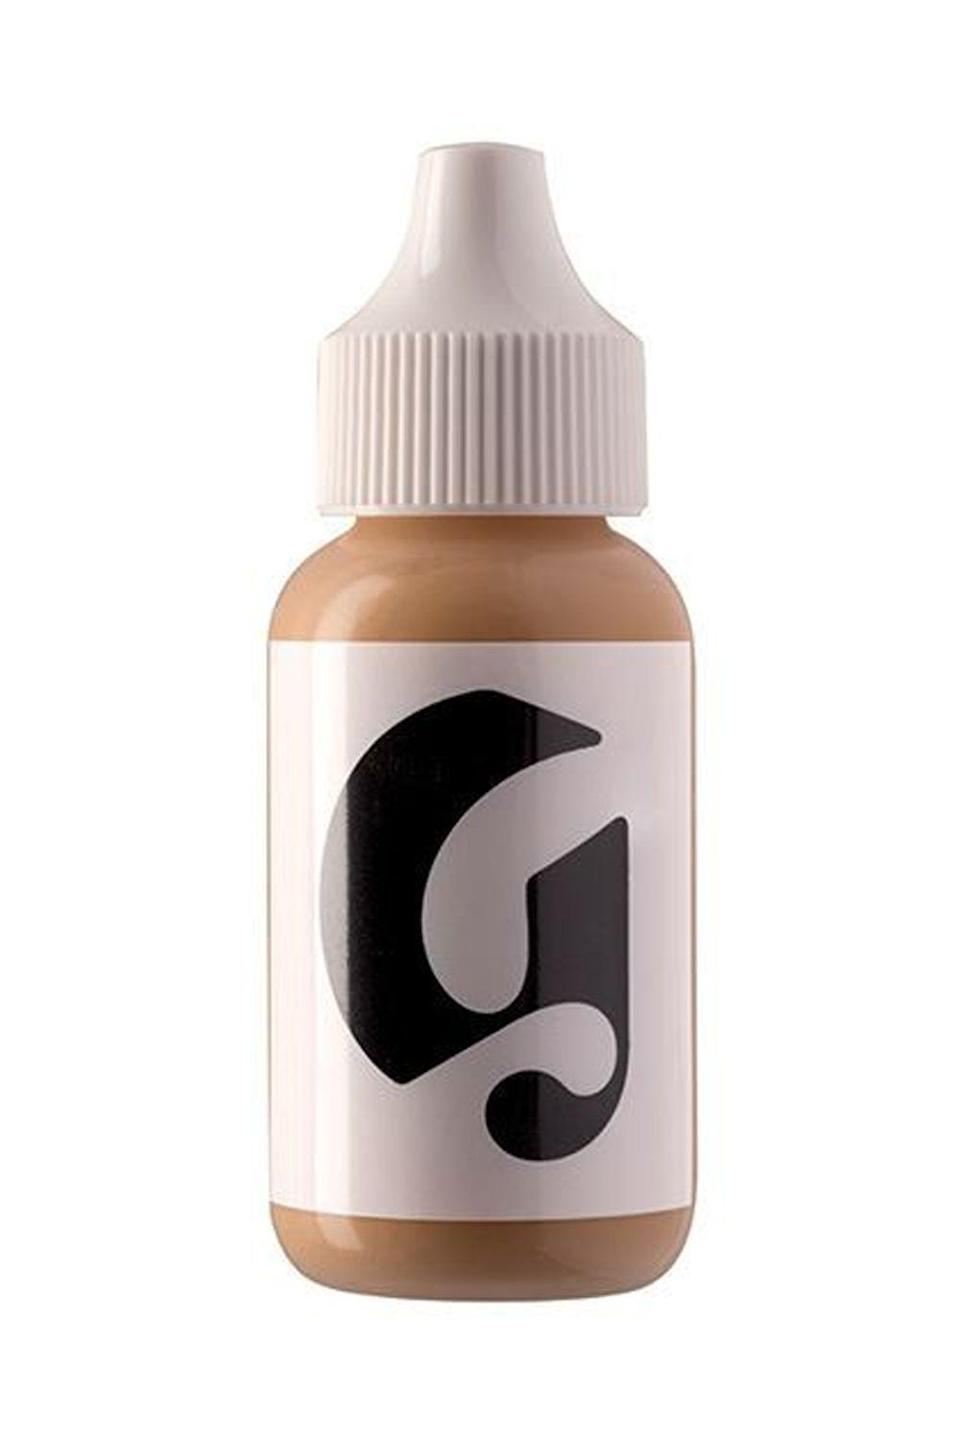 """<p><strong>Glossier</strong></p><p>glossier.com</p><p><strong>$26.00</strong></p><p><a href=""""https://go.redirectingat.com?id=74968X1596630&url=https%3A%2F%2Fwww.glossier.com%2Fproducts%2Fperfecting-skin-tint&sref=https%3A%2F%2Fwww.cosmopolitan.com%2Fstyle-beauty%2Fbeauty%2Fg36094404%2Fbest-skin-tints%2F"""" rel=""""nofollow noopener"""" target=""""_blank"""" data-ylk=""""slk:Shop Now"""" class=""""link rapid-noclick-resp"""">Shop Now</a></p><p>This classic skin tint from Glossier has been loved by editors and makeup artists for years. The breathable, ultra-thin formula is like a filter for your face. It won't fully cover up breakouts, <a href=""""https://www.cosmopolitan.com/style-beauty/beauty/advice/g3017/how-to-get-rid-of-acne-scars/"""" rel=""""nofollow noopener"""" target=""""_blank"""" data-ylk=""""slk:acne scars"""" class=""""link rapid-noclick-resp"""">acne scars</a>, or dark spots but instead <strong>gives your skin a soft glow with a sheer wash of color</strong> with a bit of pore-blurring powders.</p>"""